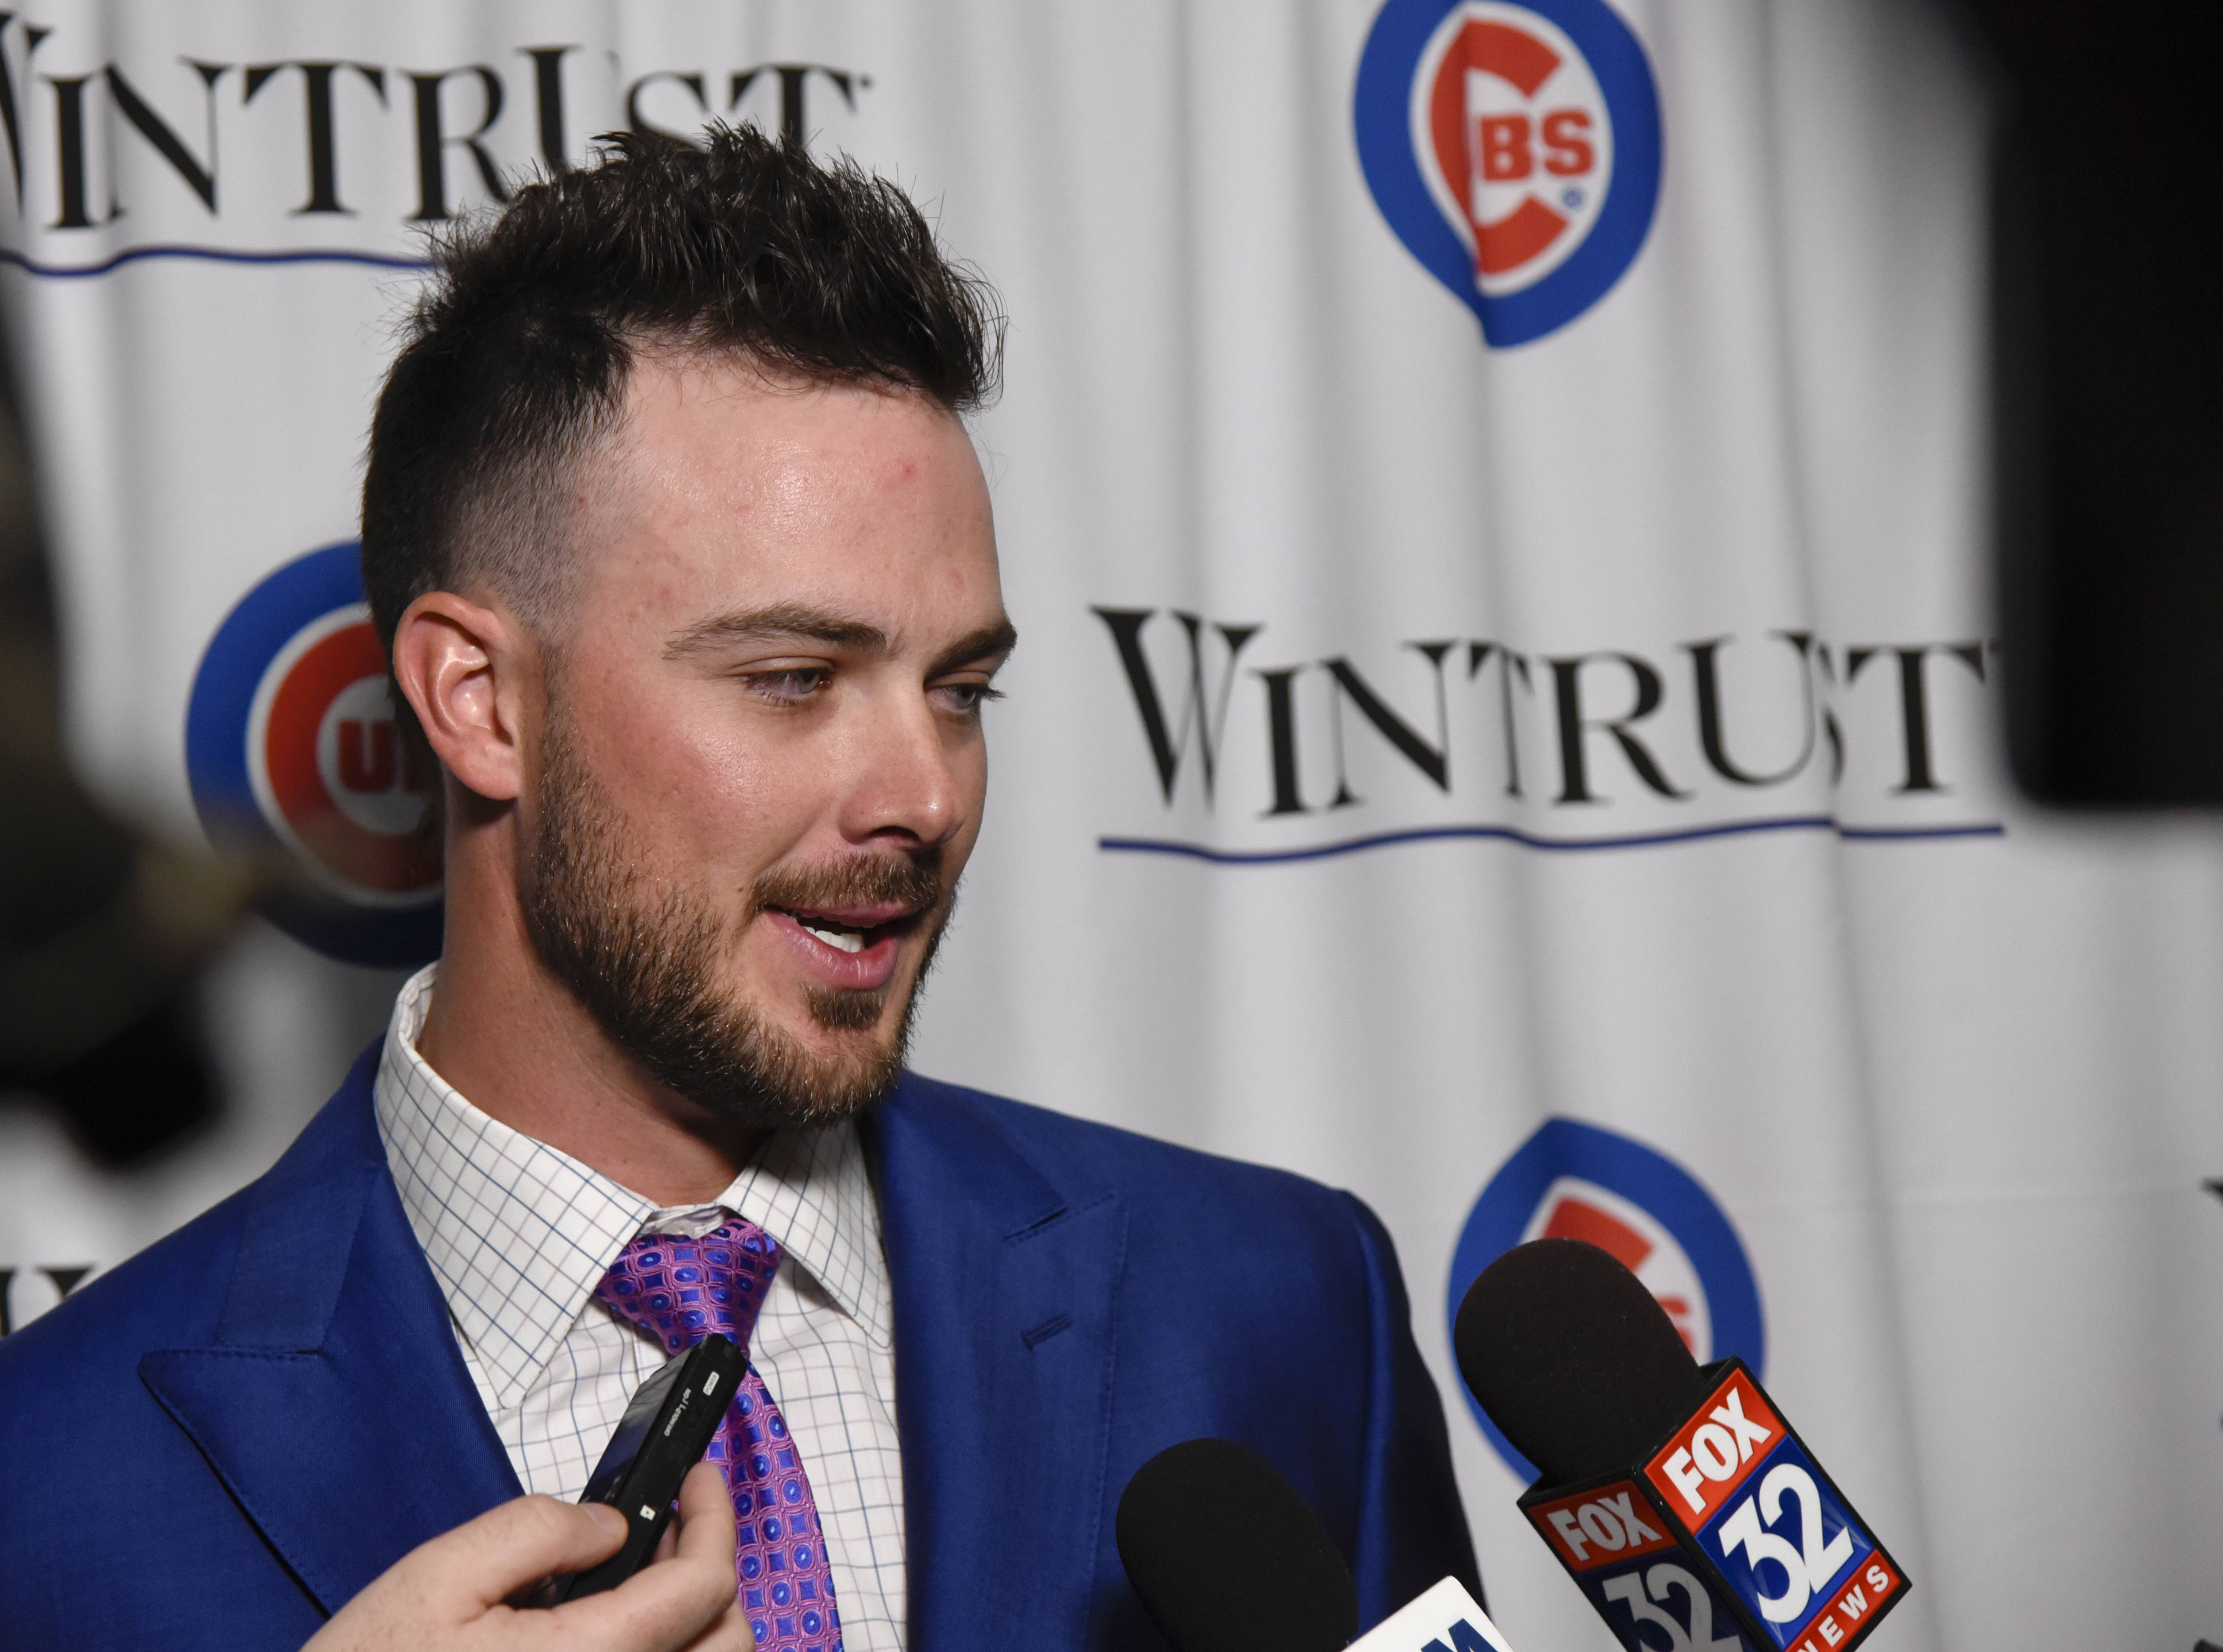 Chicago Cubs third baseman Kris Bryant, here talking with the media during the team's annual convention last month, is the favorite player of Bartlett's Jonathon Holiday, who is in Mesa, Ariz., as a special guest of the team.